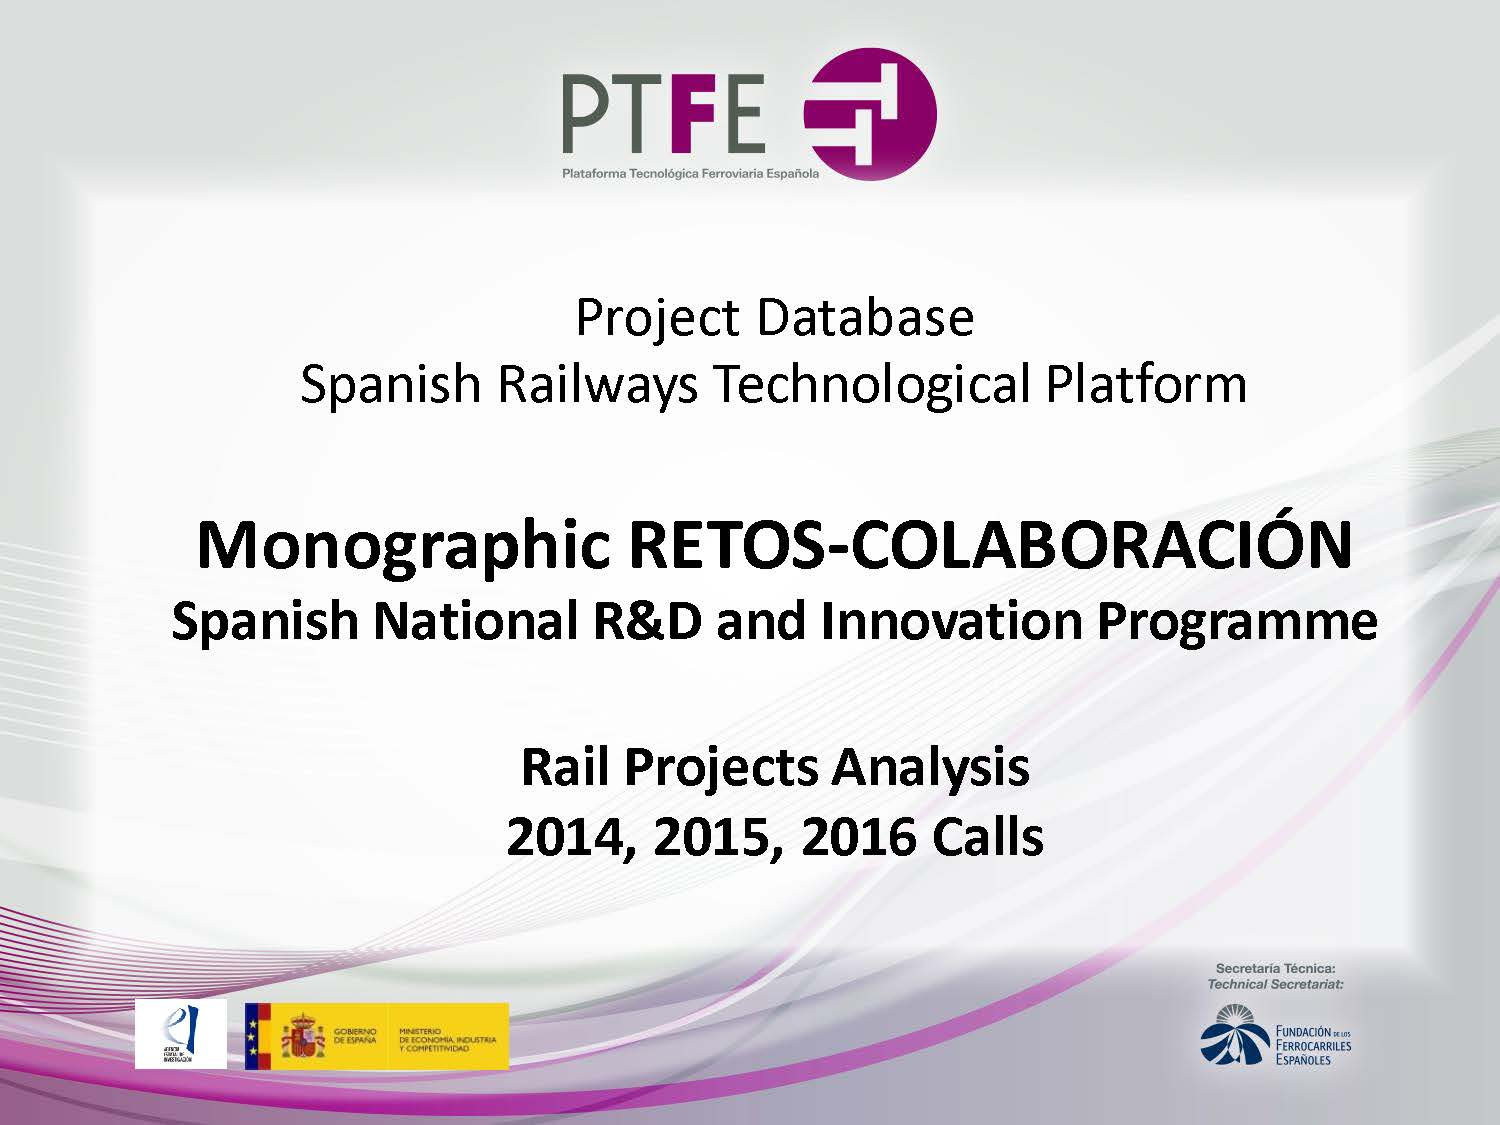 Monographic RETOS-COLABORACIÓN Spanish National R&D and Innovation Programme